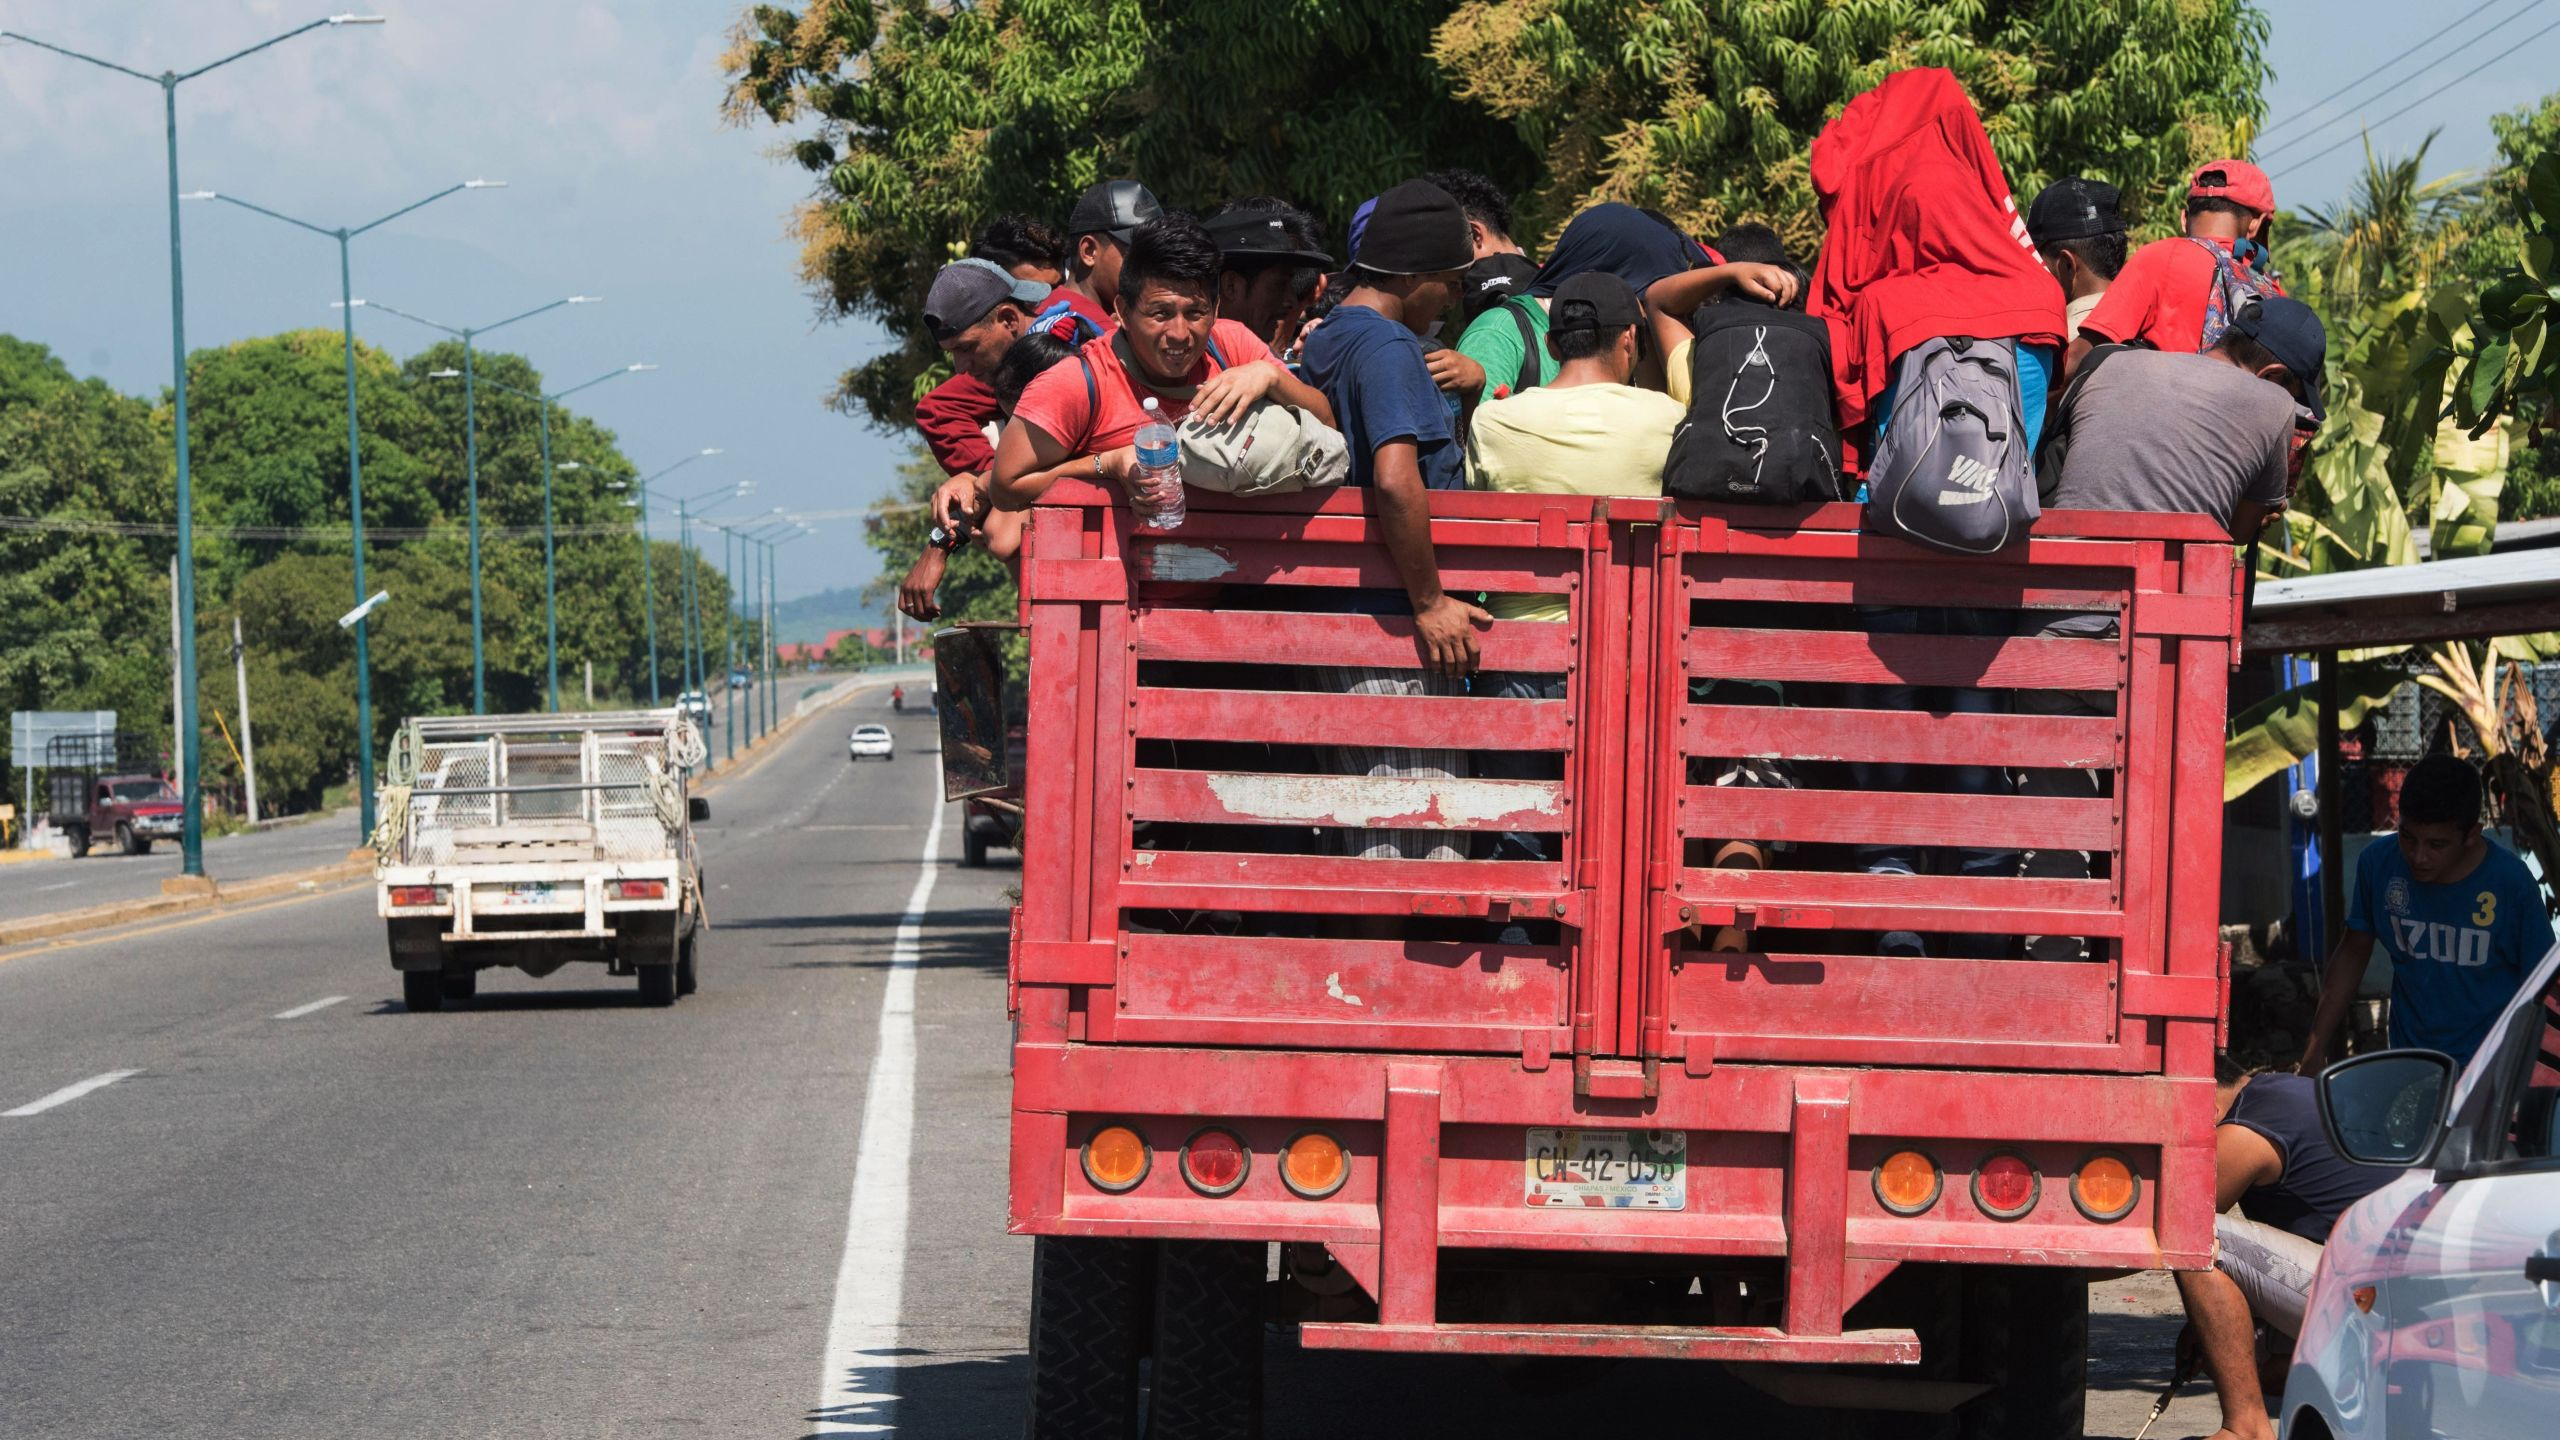 Central American migrants heading to the United States with a second caravan, are seen in Huixtla, Chiapas state after crossing the border from Guatemala, in southern Mexico on Jan. 19, 2019. (Alejandro Melendez/AFP/Getty Images)